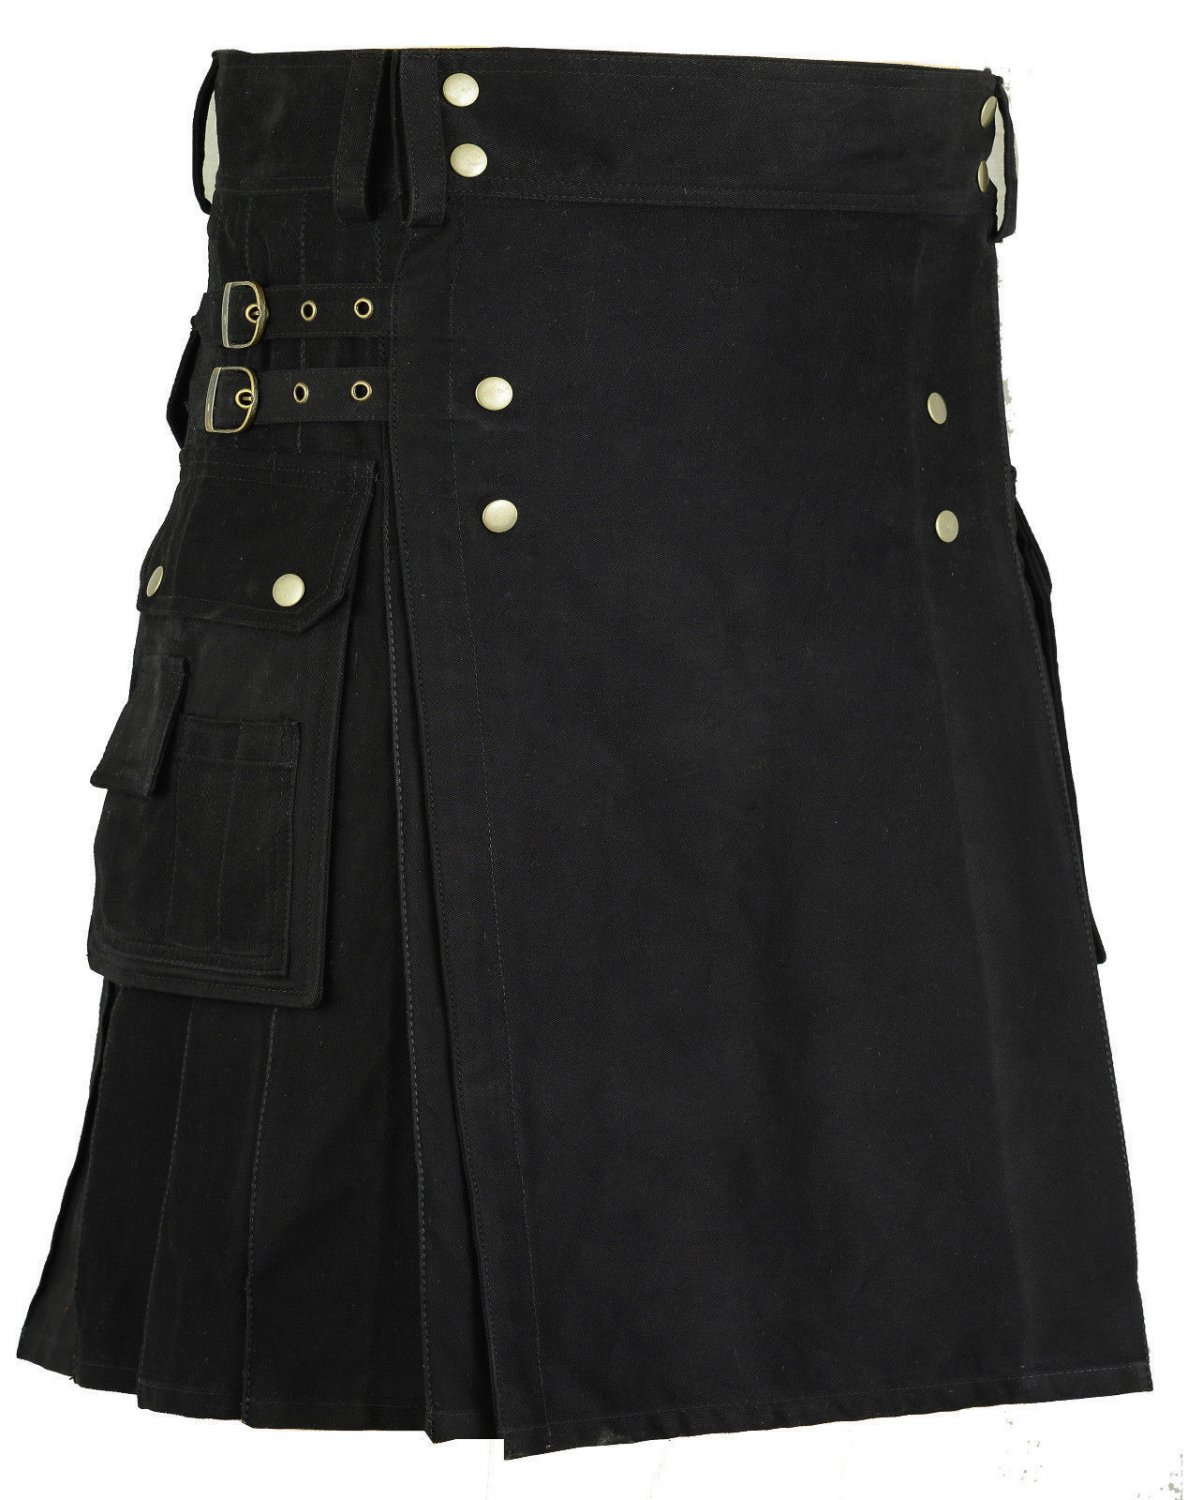 Gothic Black Cotton Outdoor Kilt for Men 52 Size Utility Kilt with Brass Material